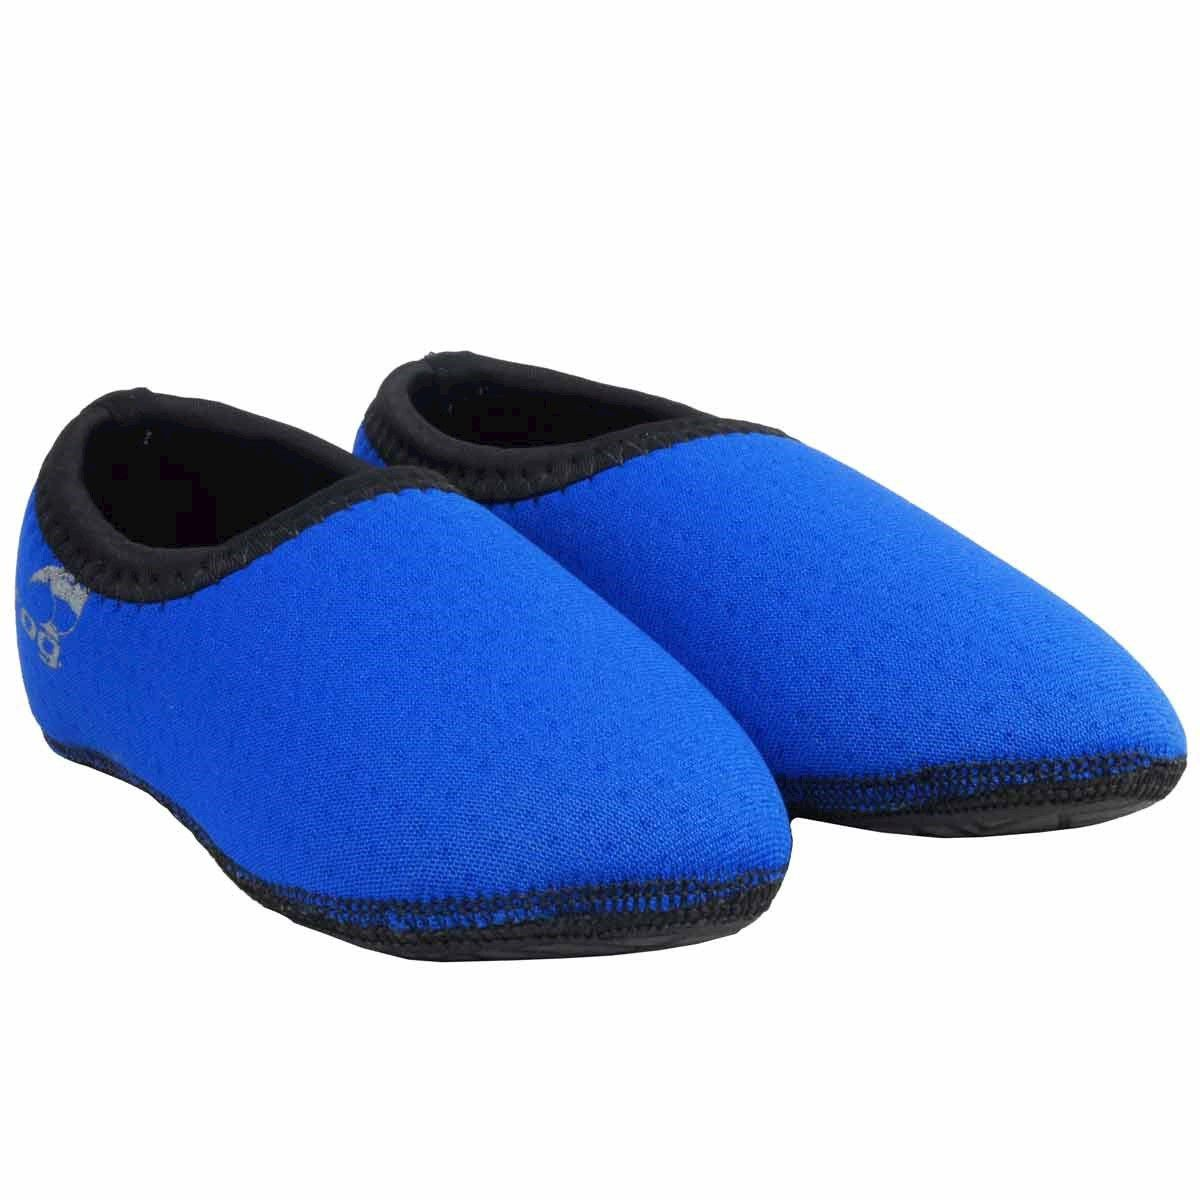 Sapato de Neoprene Fit Adulto Azul Royal Ufrog